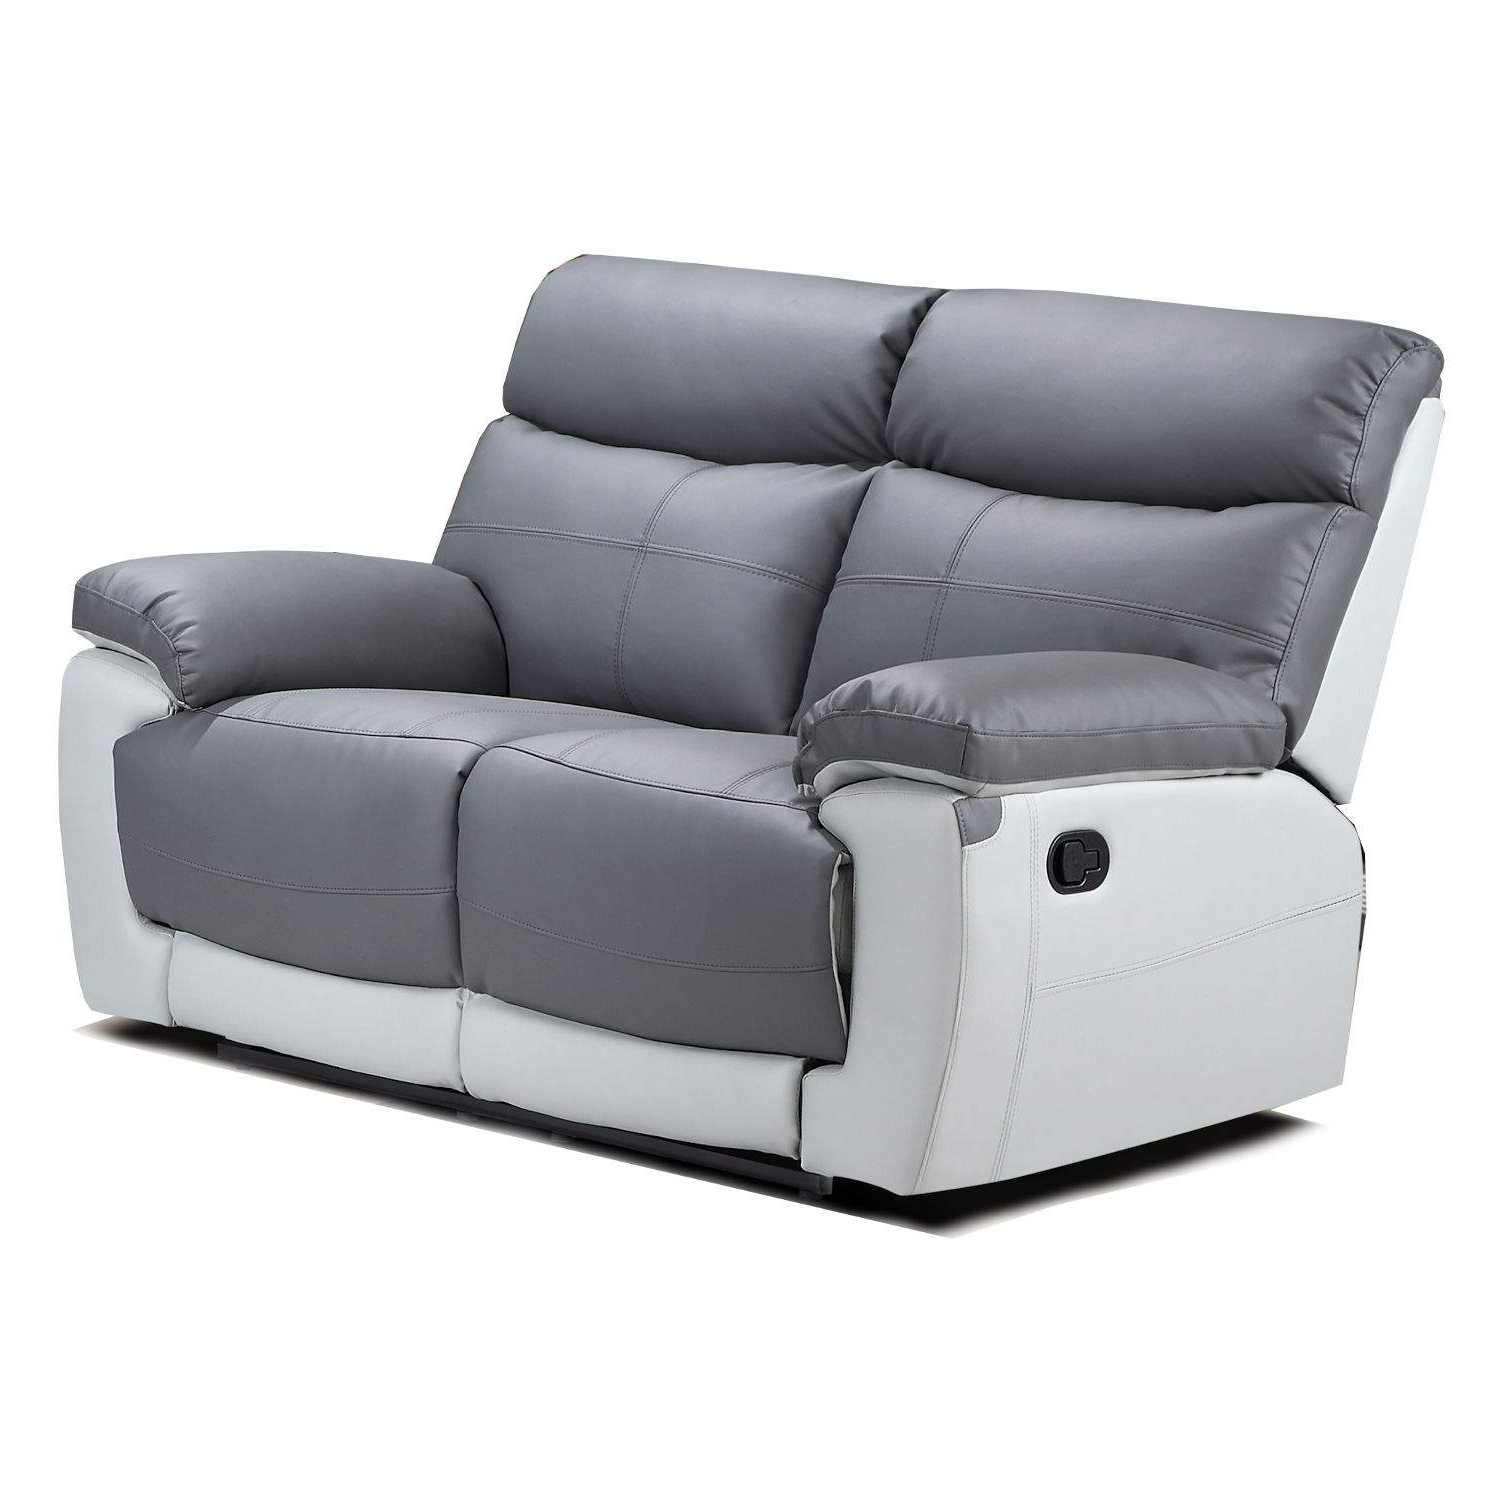 Newest Duo Lexi 2 Seater Leather Recliner Sofa – Next Day Delivery Duo With 2 Seater Recliner Leather Sofas (View 13 of 15)